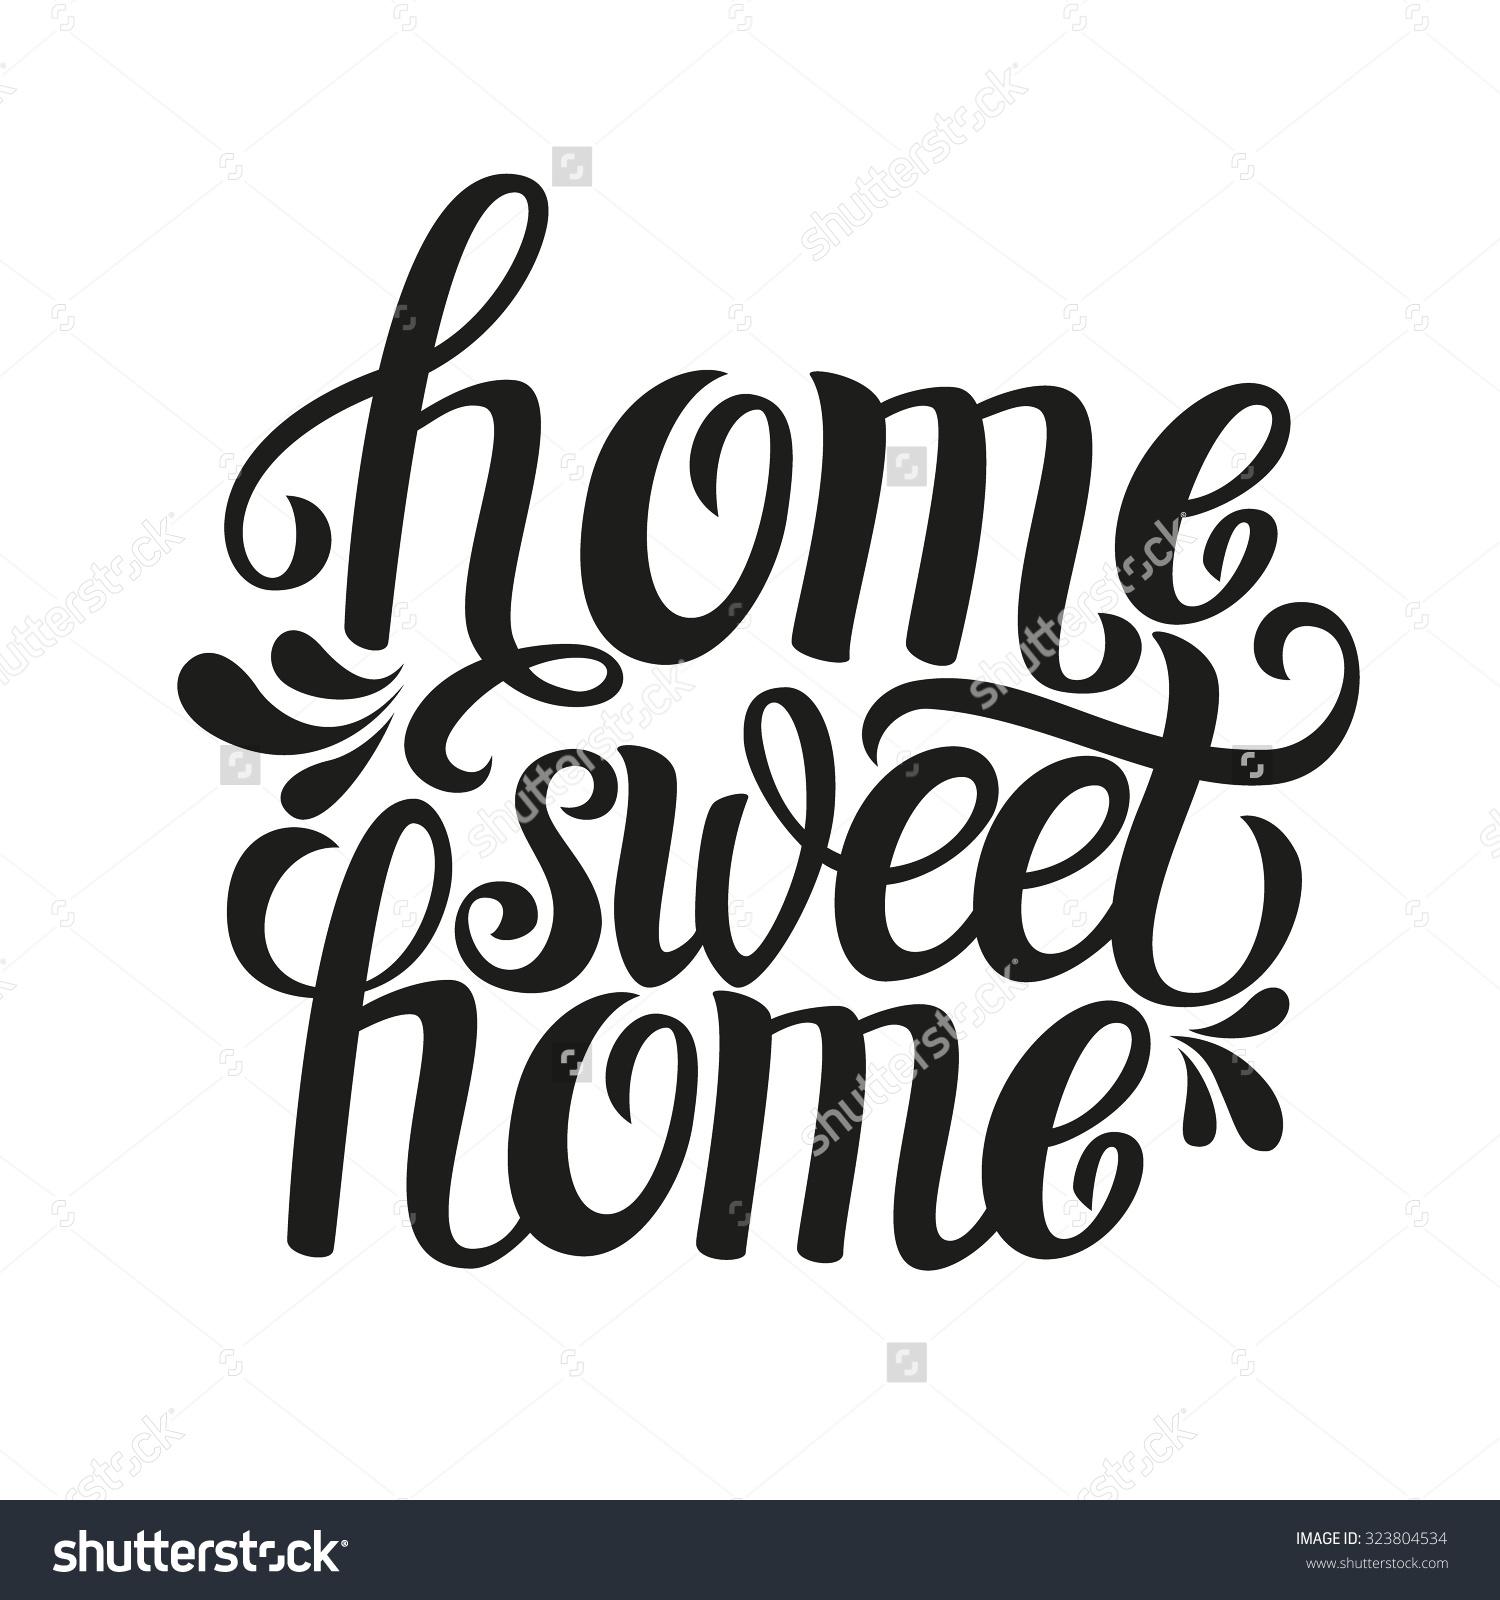 Cute country home sweet home clipart svg stock Cute country home sweet home clipart - ClipartFest svg stock